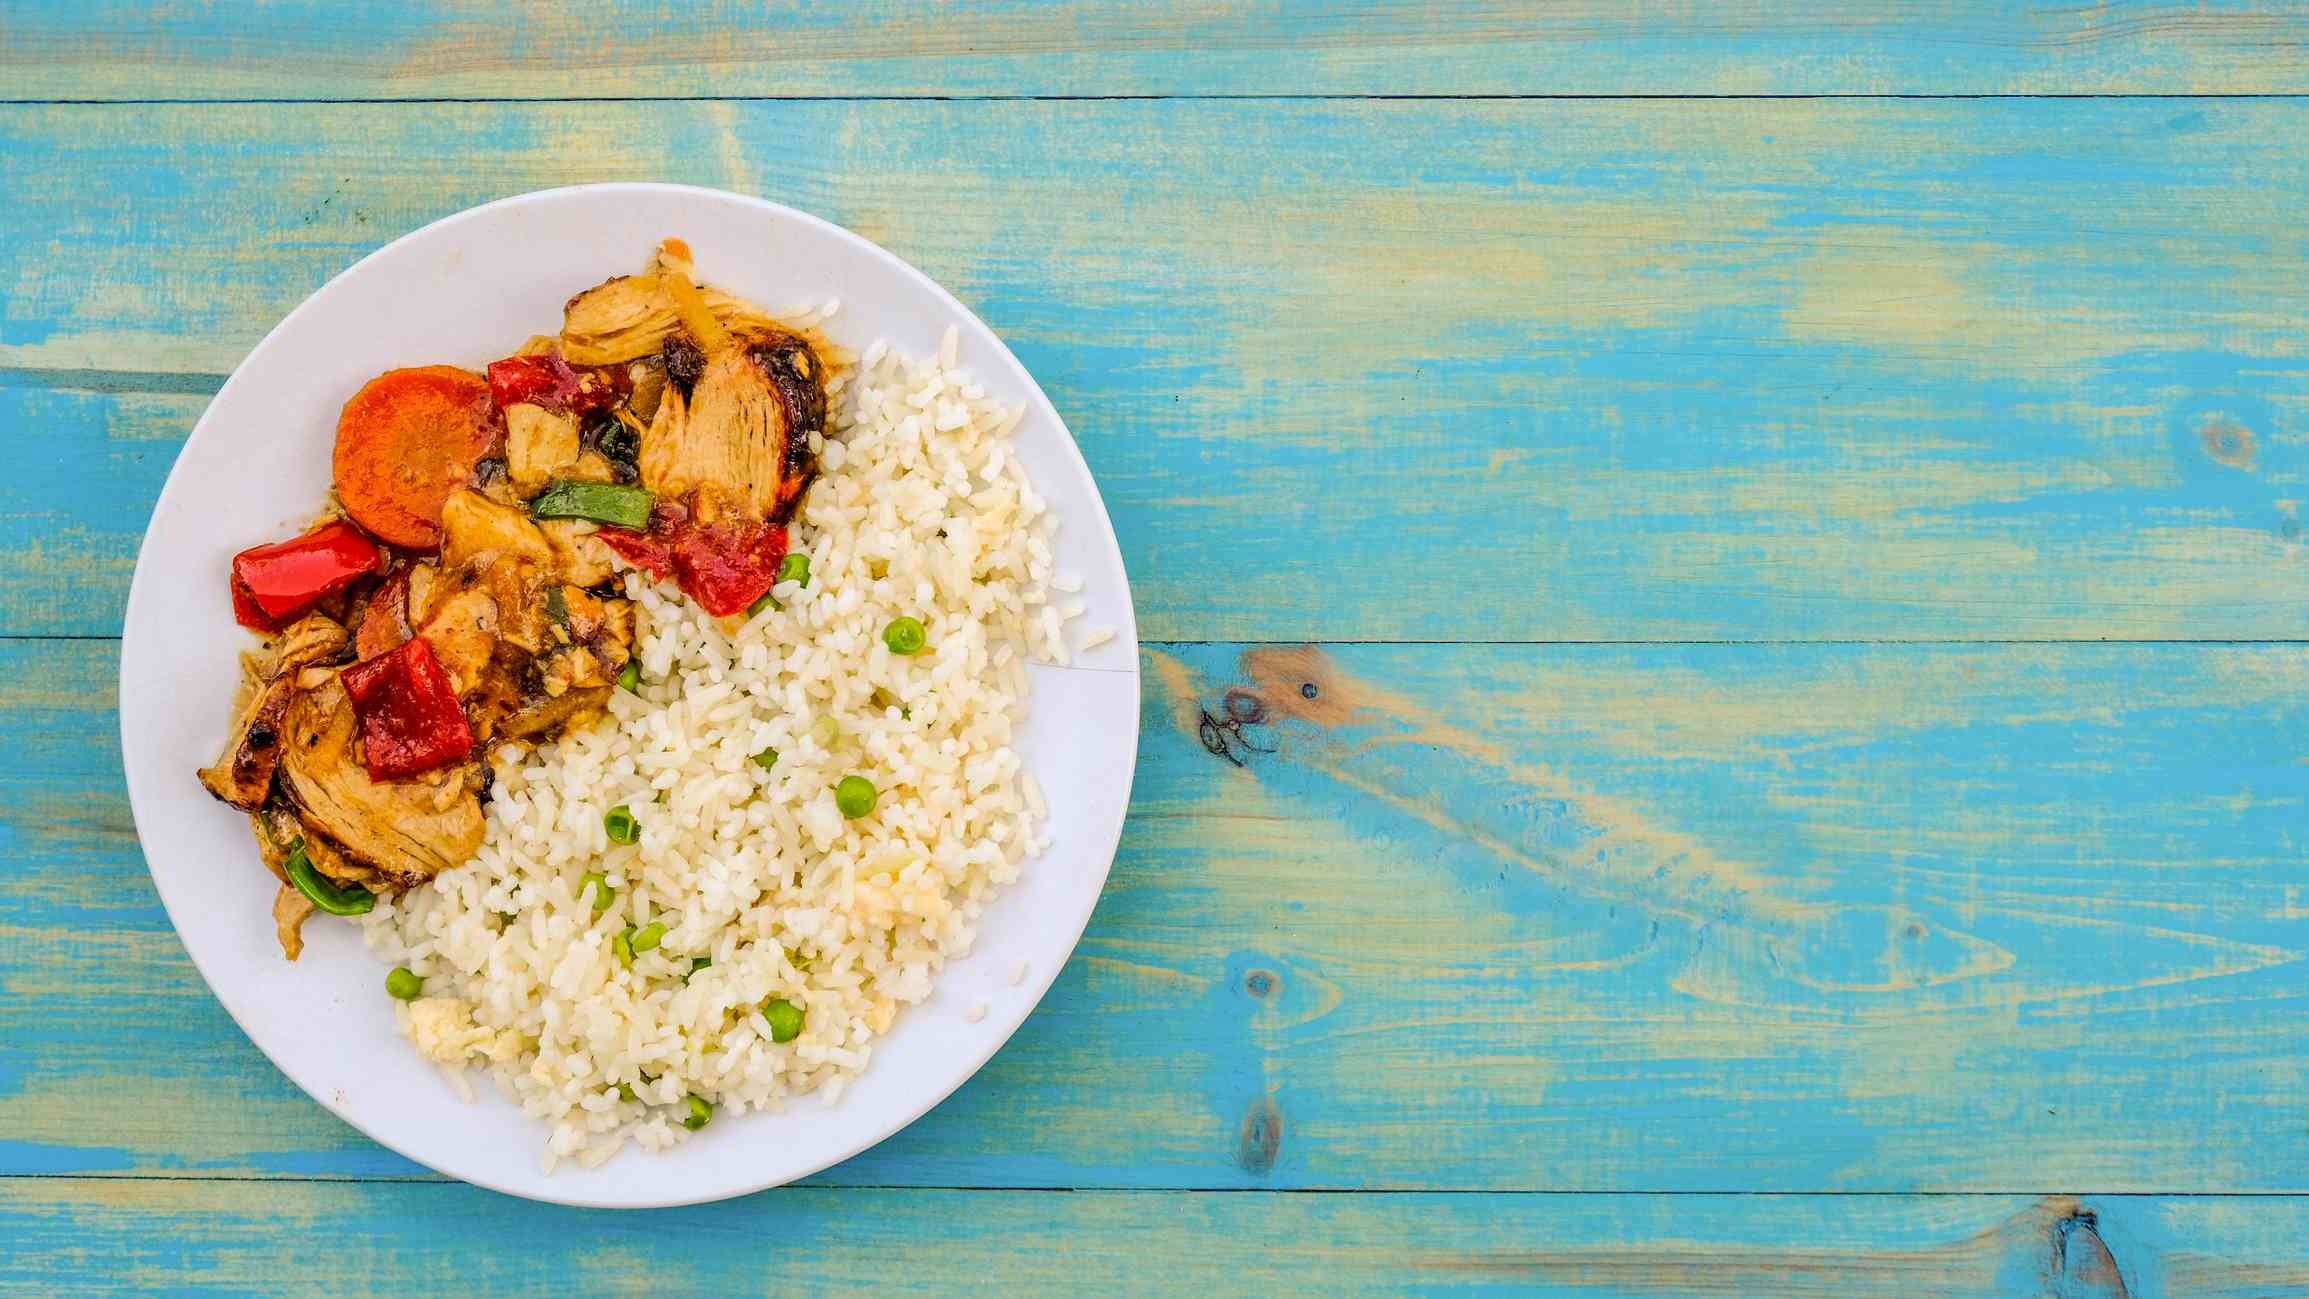 Chicken stir-dfry with bell peppers